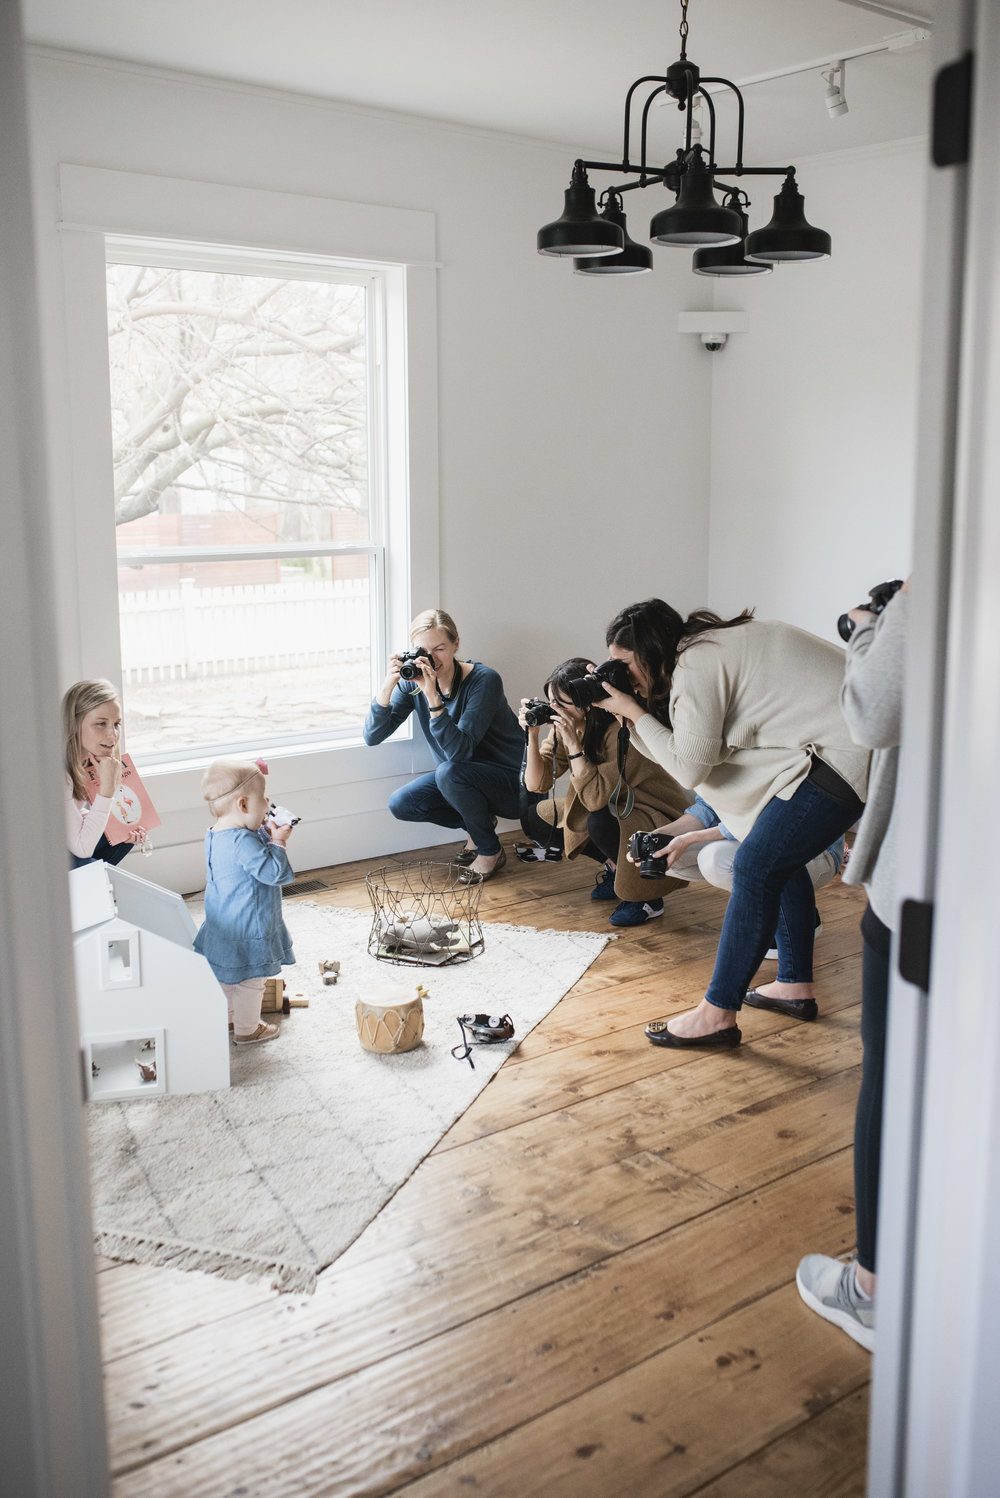 Moms and beginners practicing manual mode photography with the help of a professional photographer at  Kindred Photography Workshops , Photo by  Hazel and Haze Photography